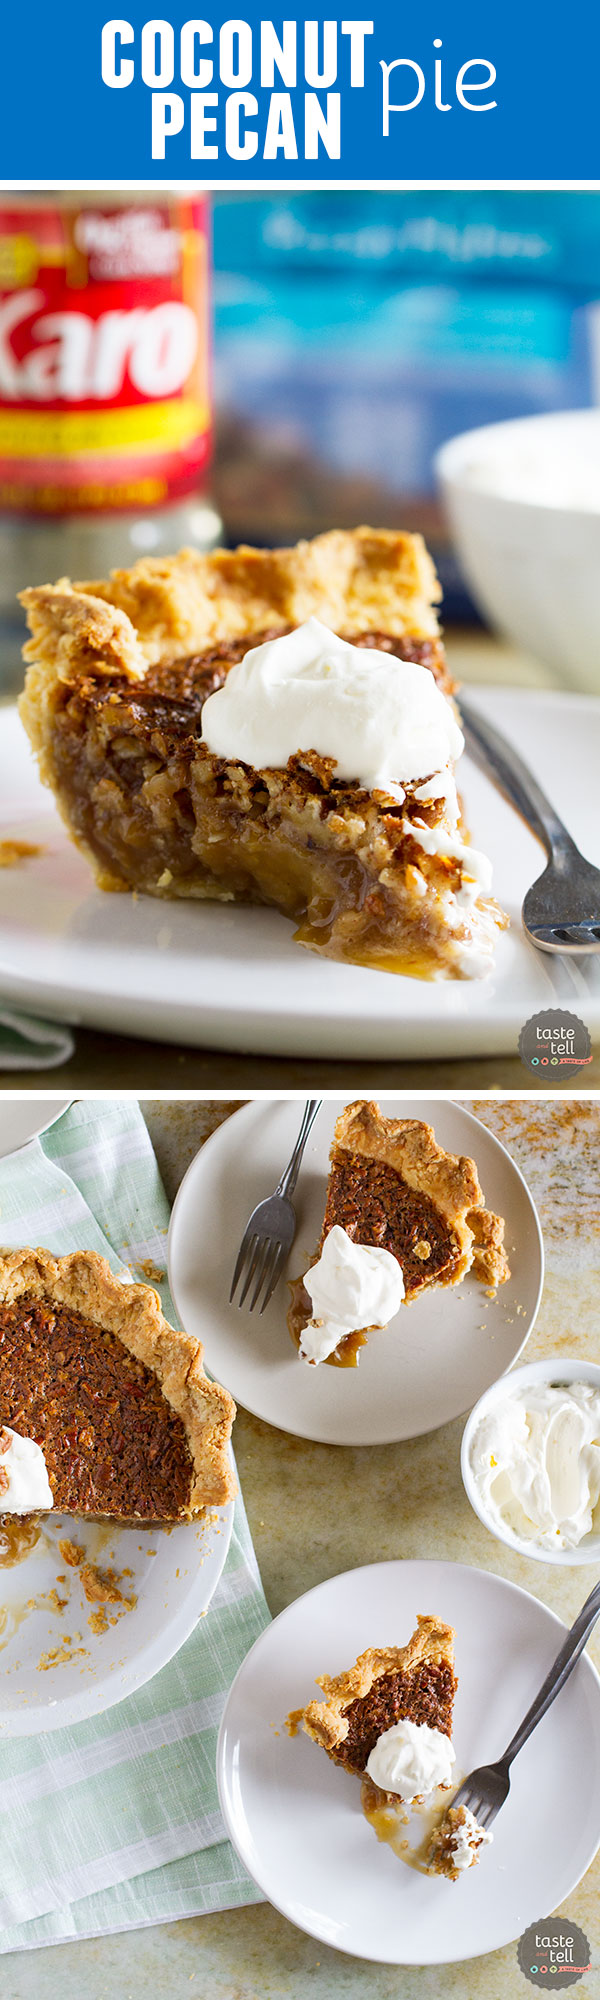 Sweet and gooey, this Coconut Pecan Pie is the perfect way to change up a traditional pecan pie.